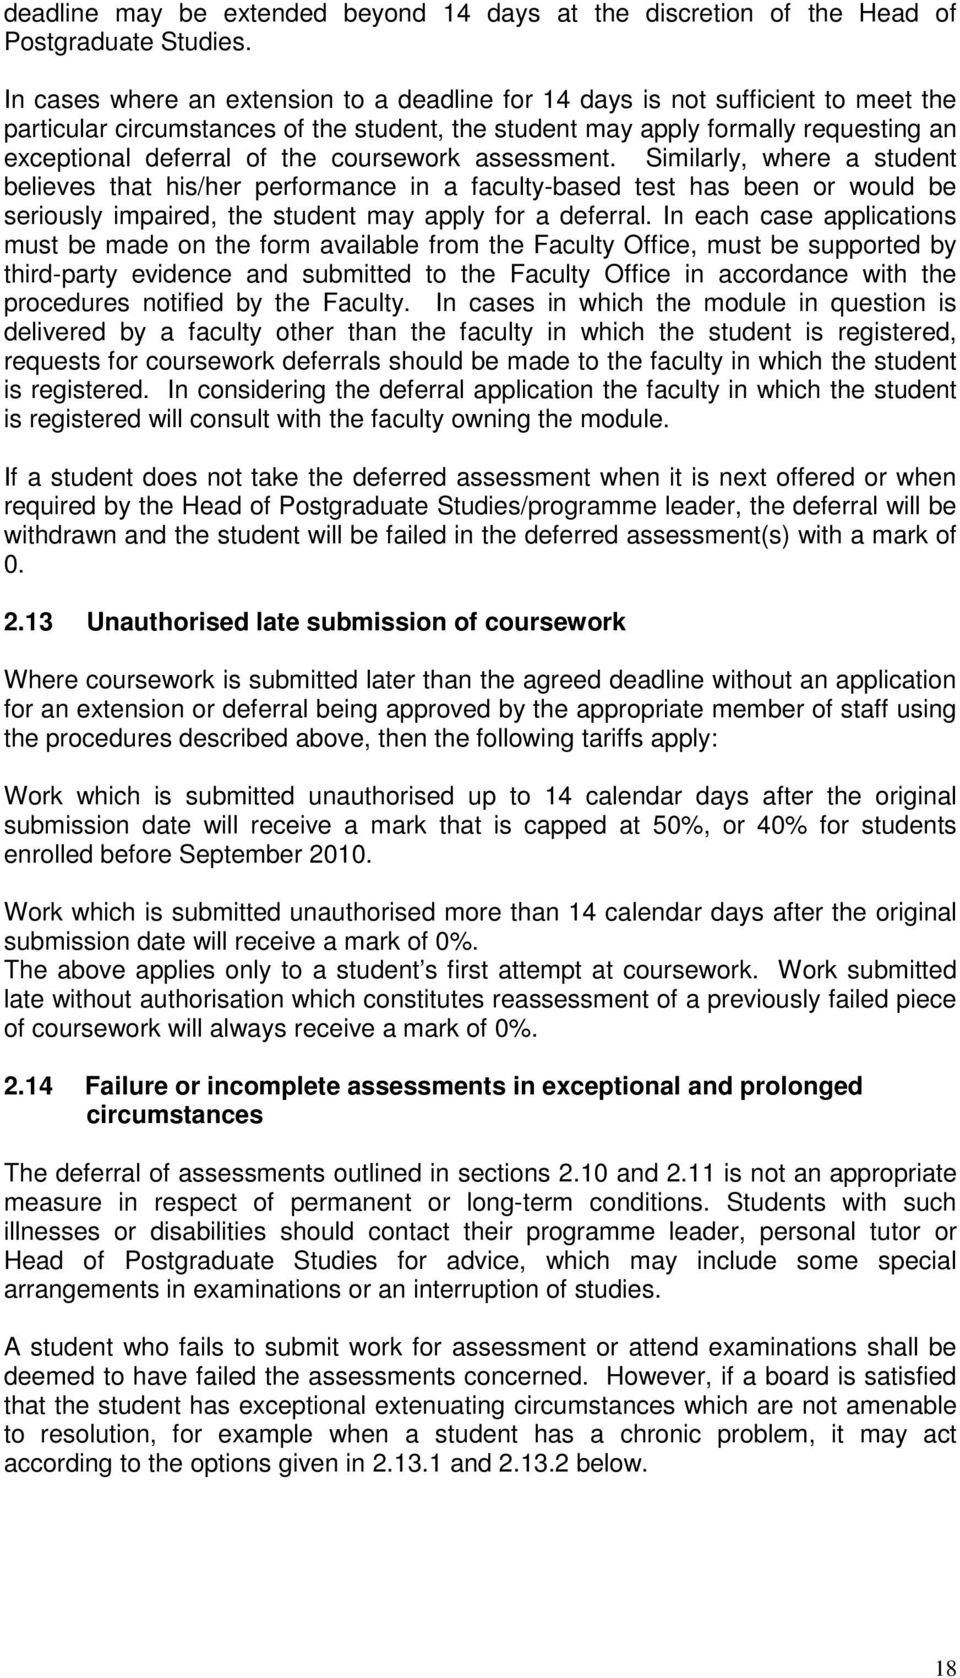 coursework assessment. Similarly, where a student believes that his/her performance in a faculty-based test has been or would be seriously impaired, the student may apply for a deferral.